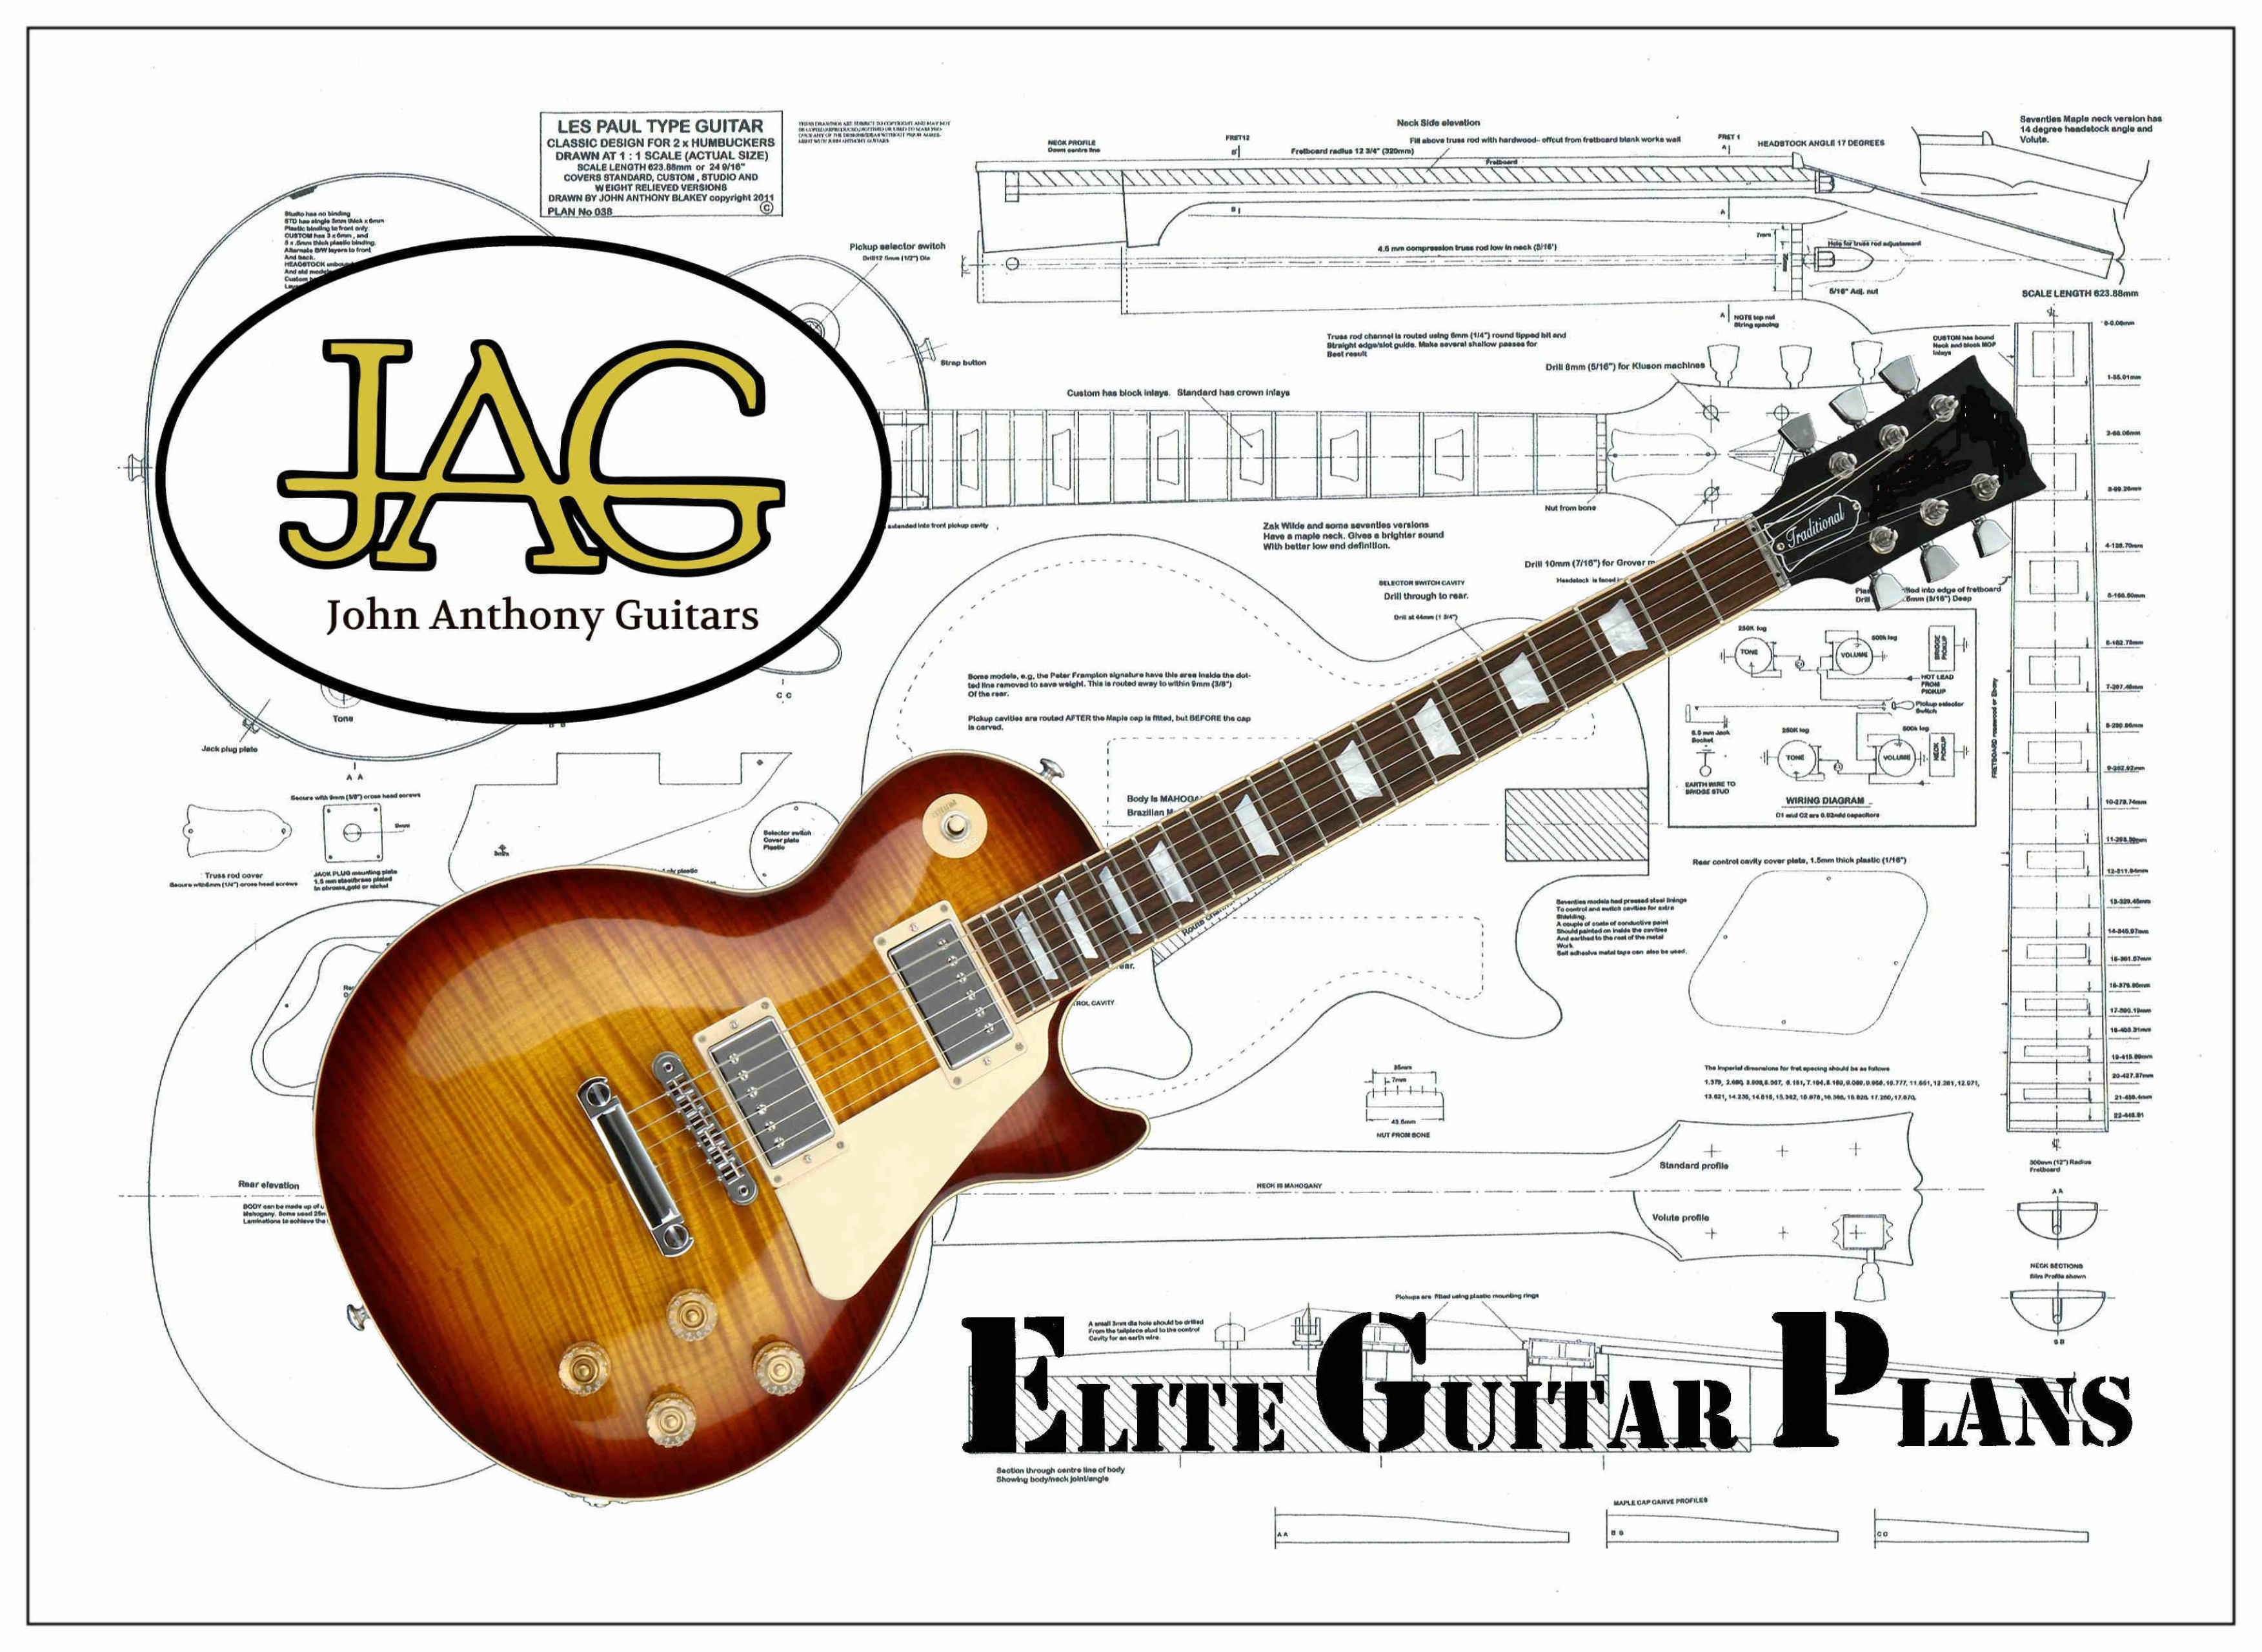 Les Paul Guitar Drawing At Free For Personal Use 1959 Gibson Wiring Diagram 3505x2560 Plans To Build A